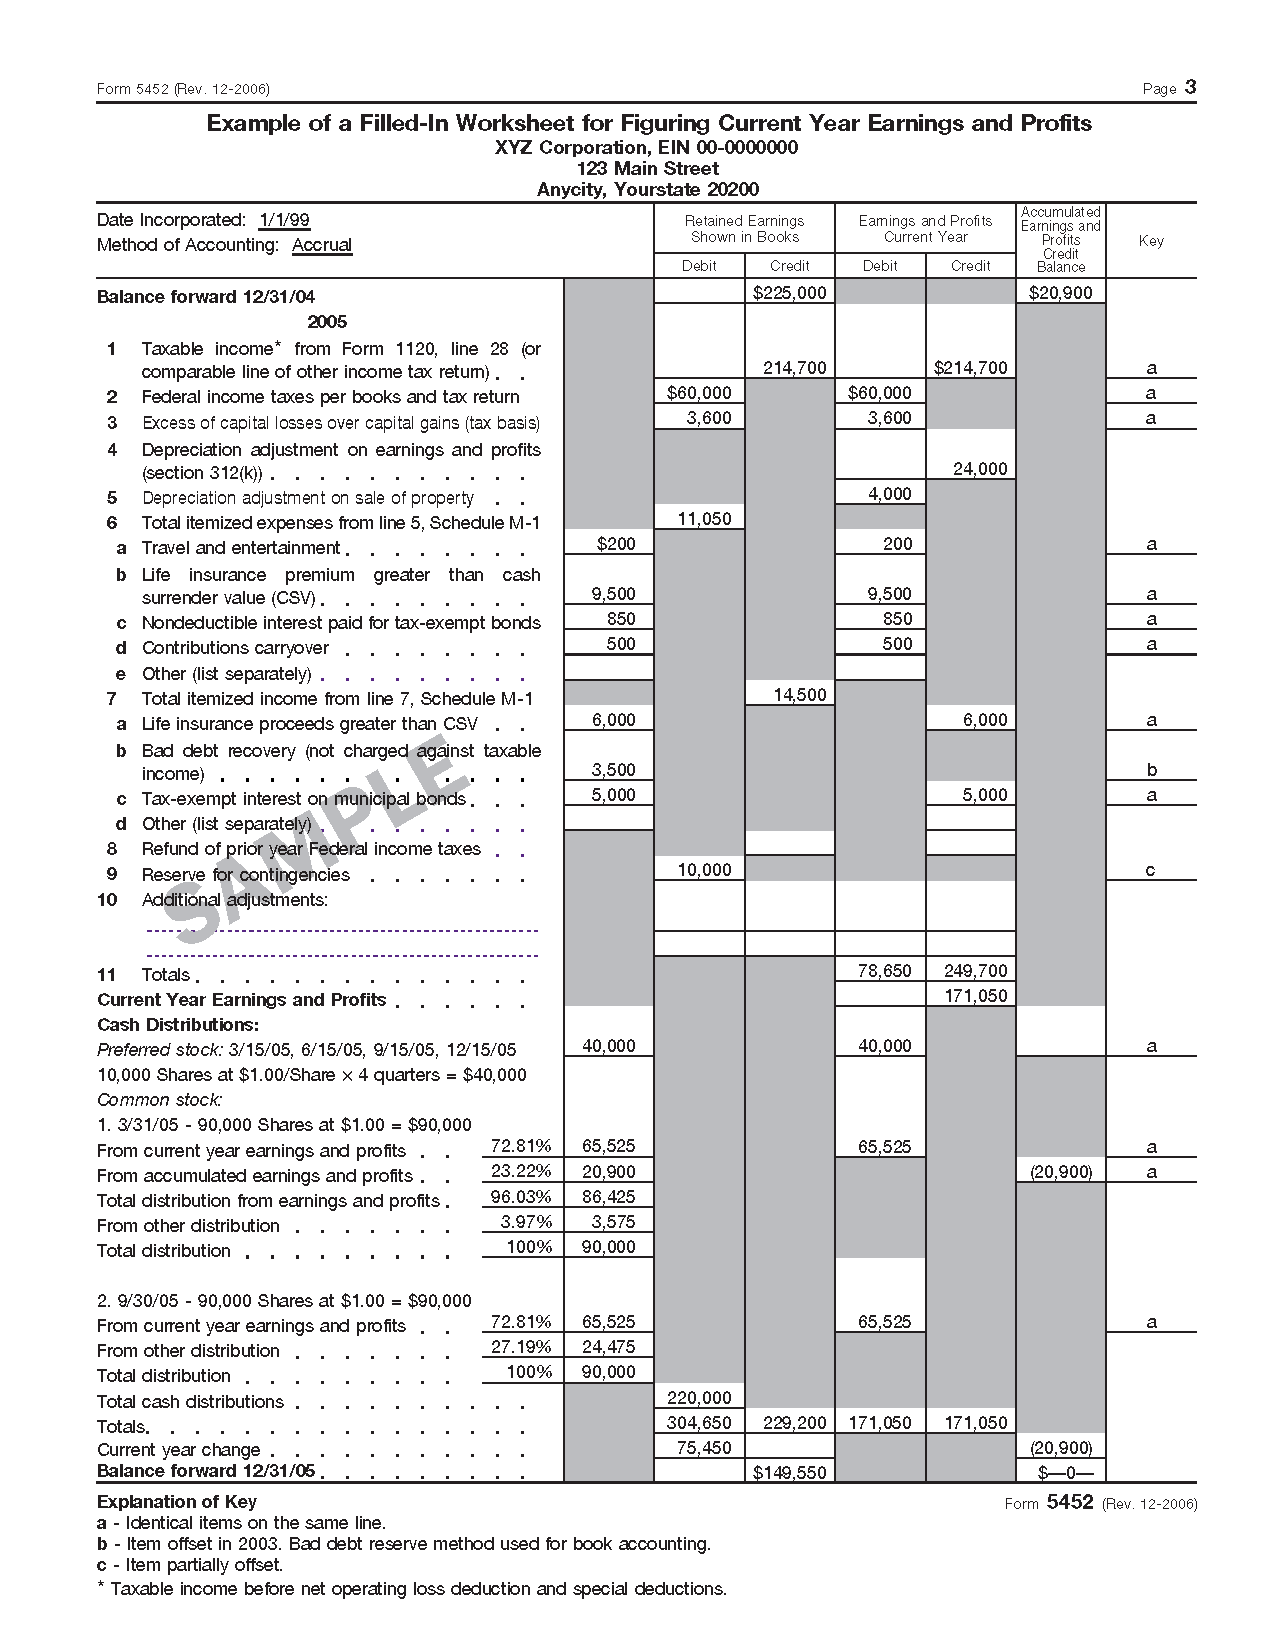 Uncategorized Shareholder Basis Worksheet form 5452 corporate report of nondividend distributions view all 2011 irs tax forms